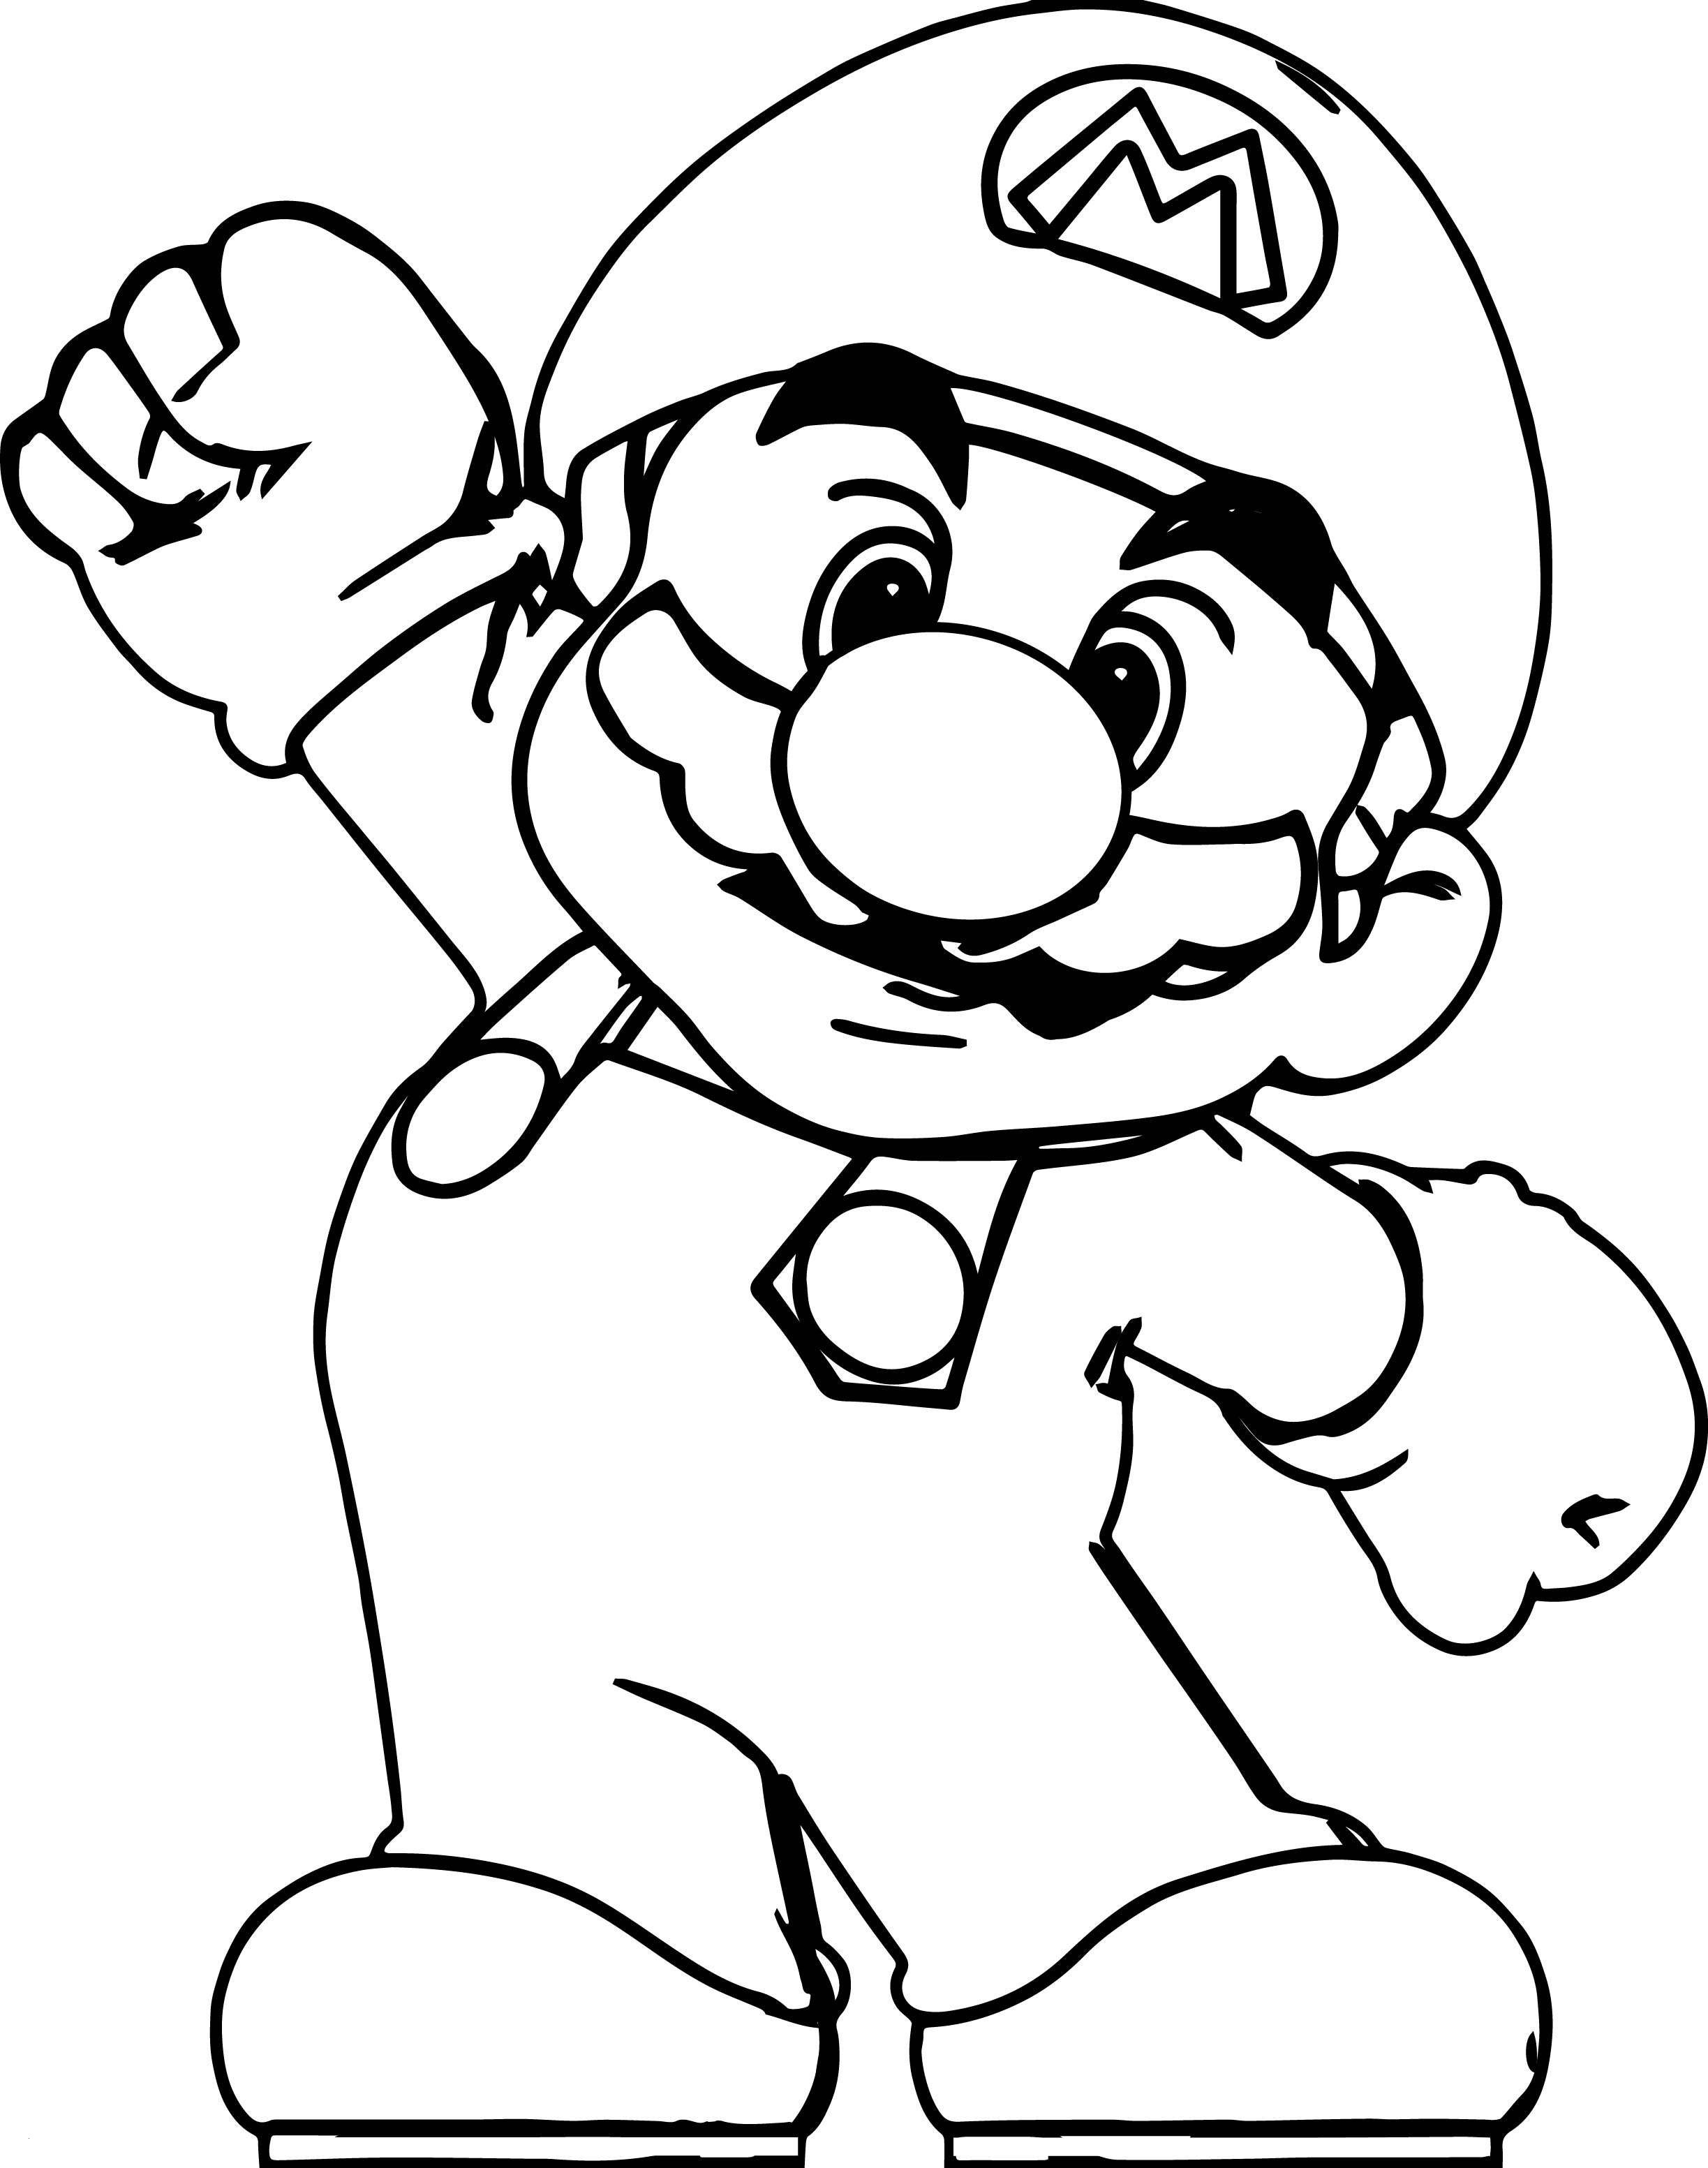 24 Super Mario Coloring Pages Collection - Coloring Sheets